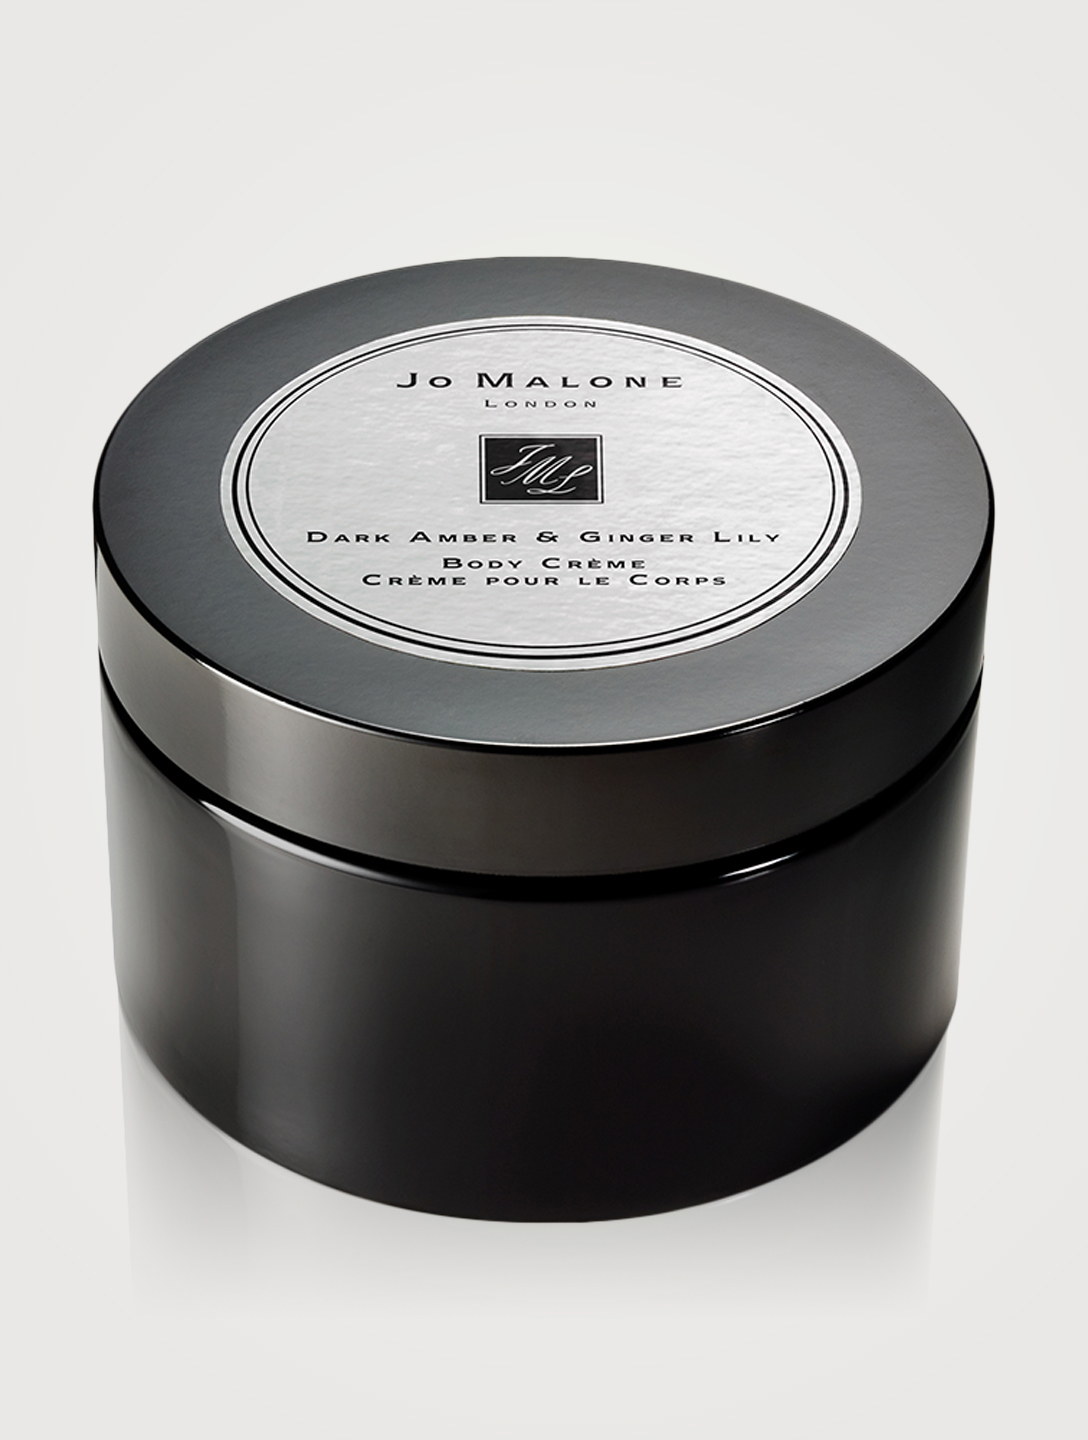 JO MALONE LONDON Dark Amber & Ginger Lily Body Crème Beauty